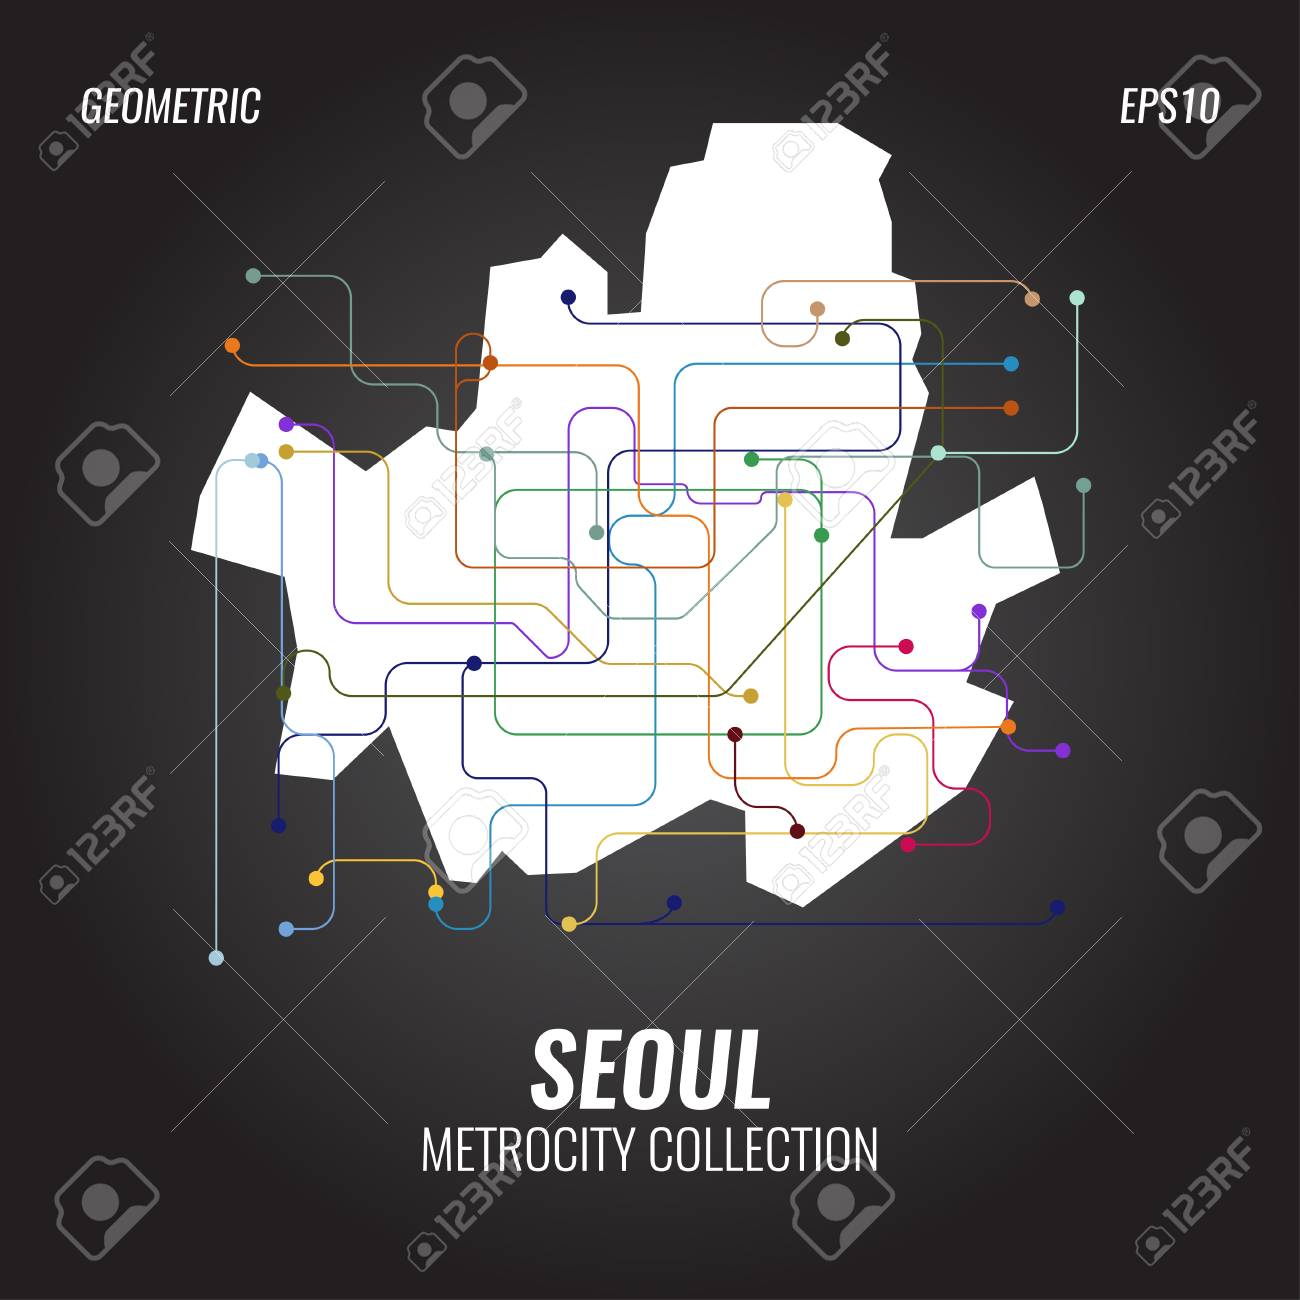 Seoul Subway Map Poster.Seoul Metro Map City Subway Graphic Vector Abstract Poster